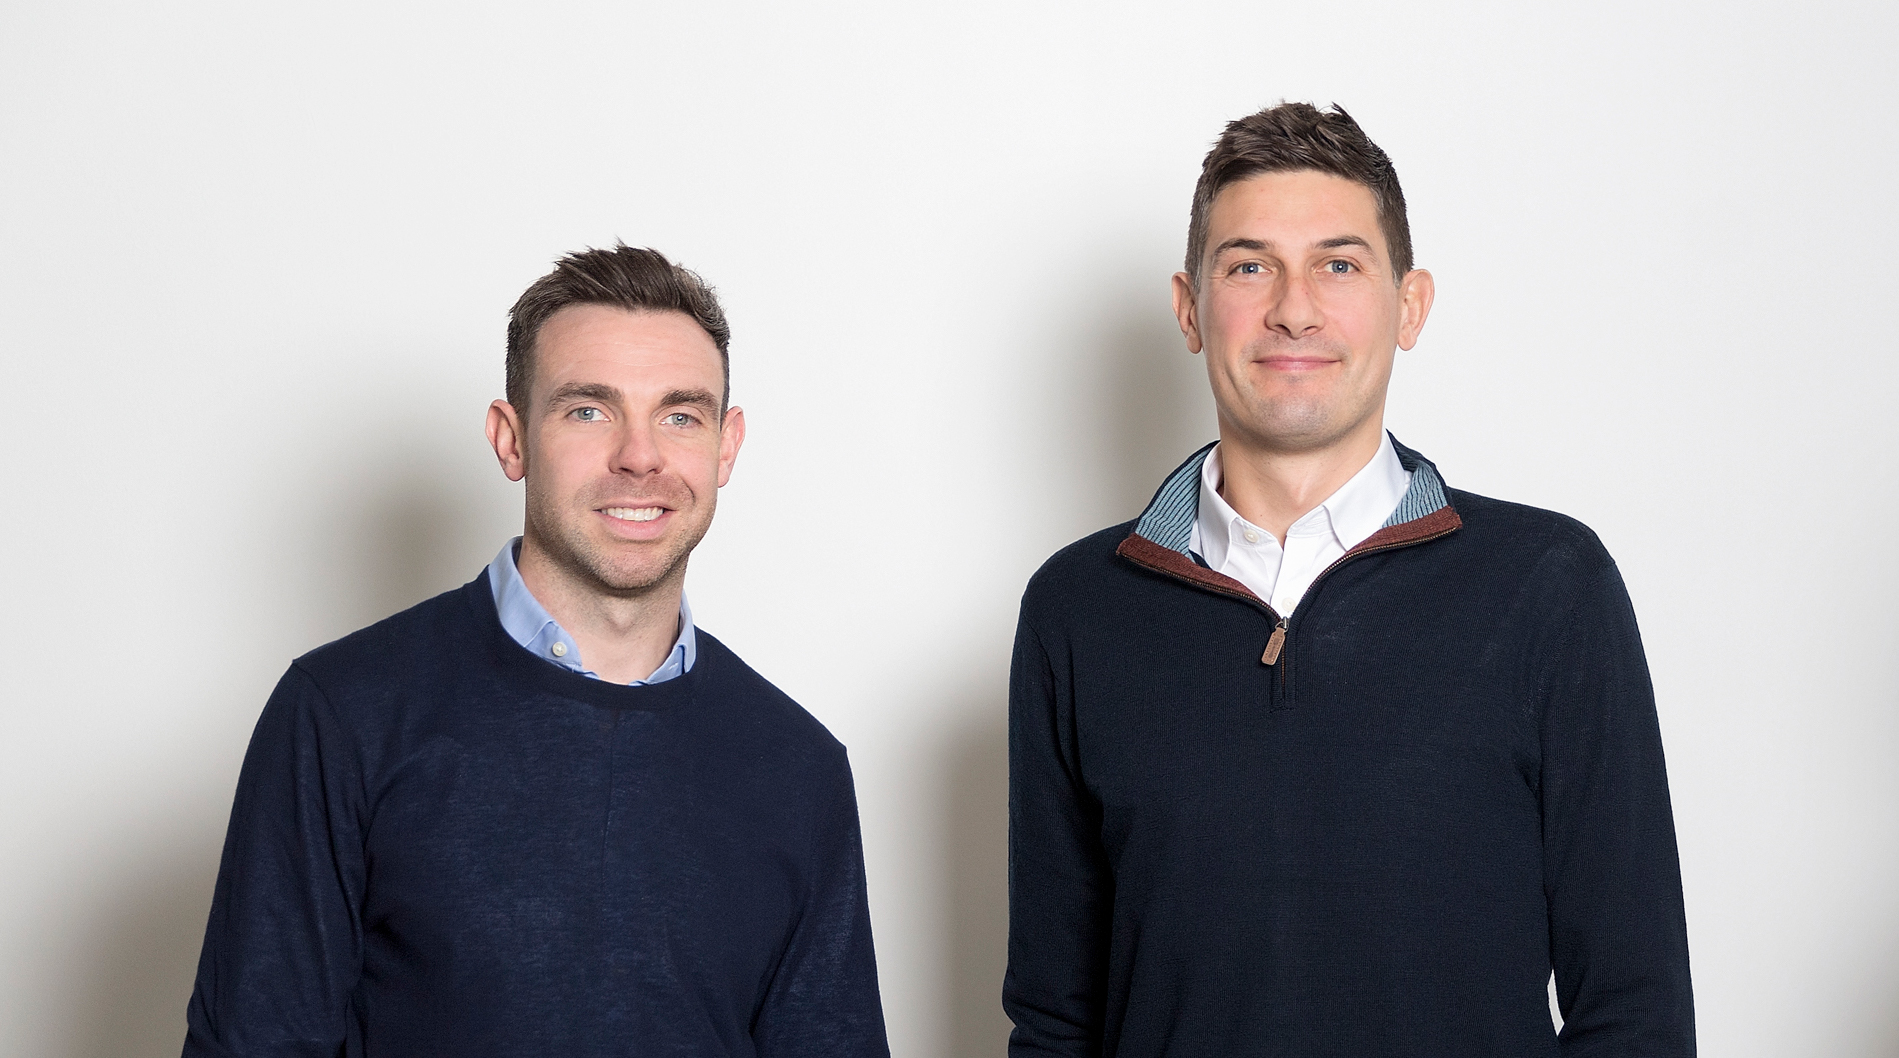 Epiphany Co-founder Robin Skidmore Invests £500k in New Ad Agency